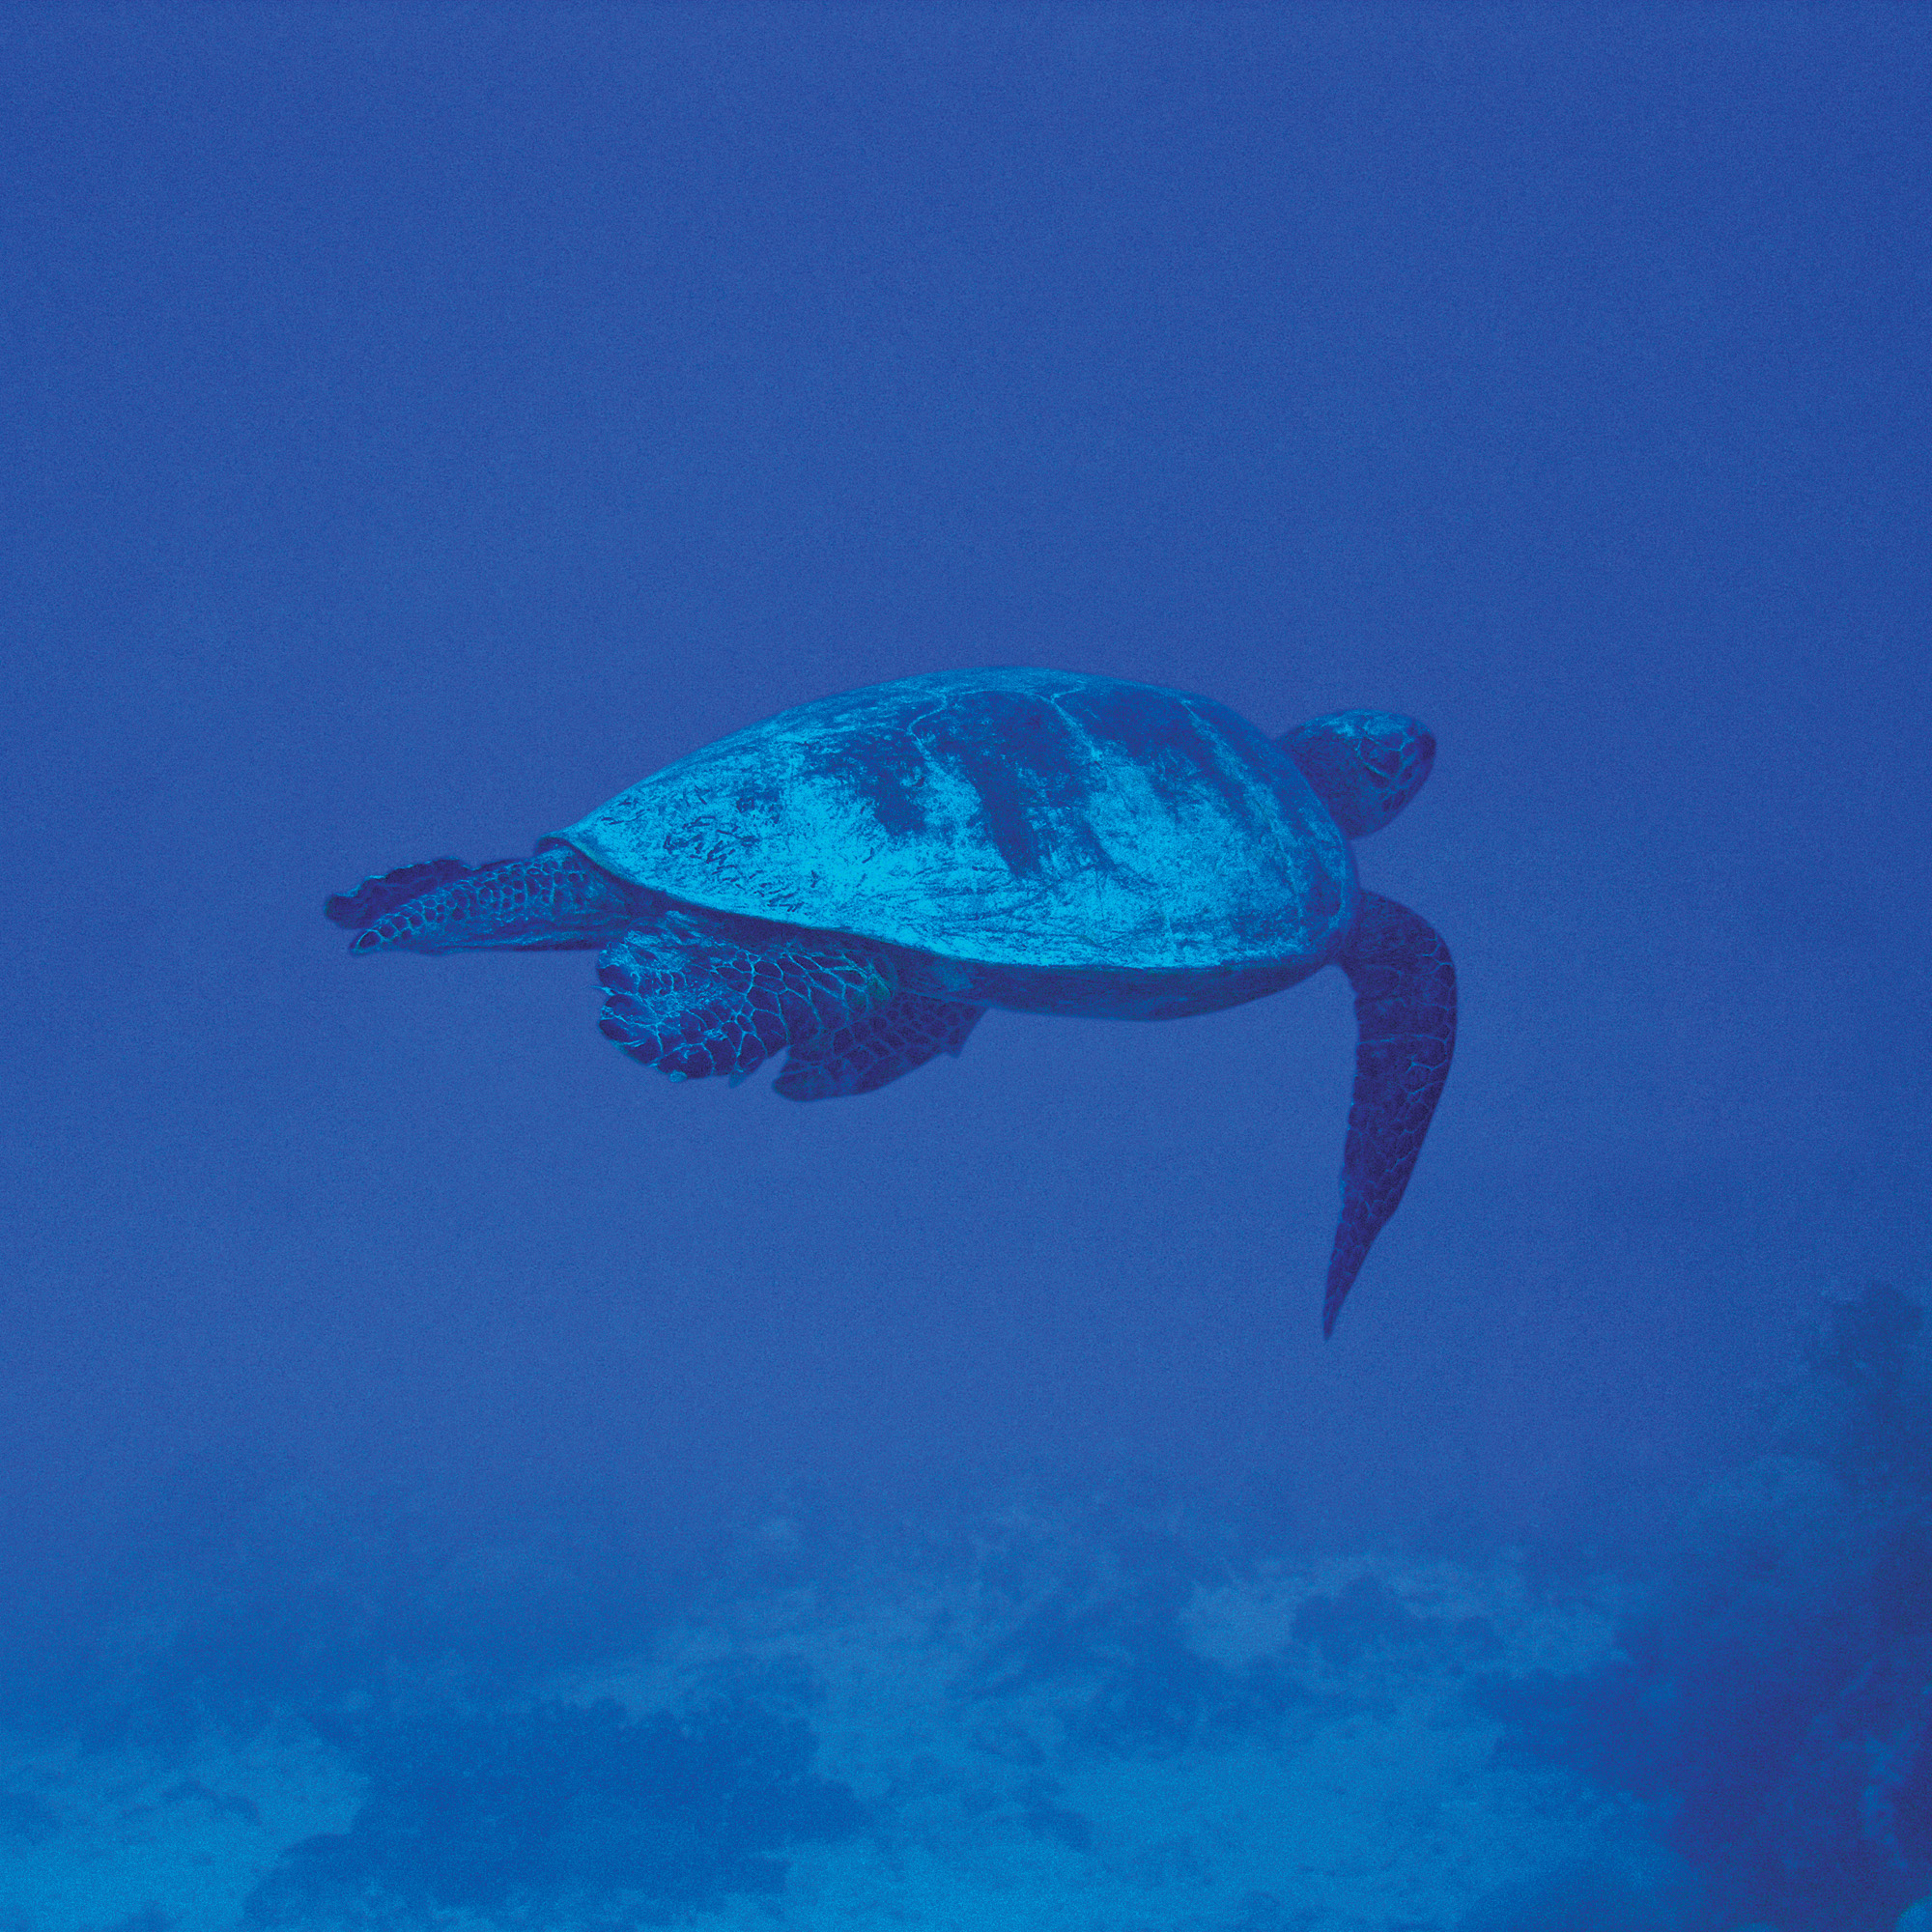 turtle swimming in blue water